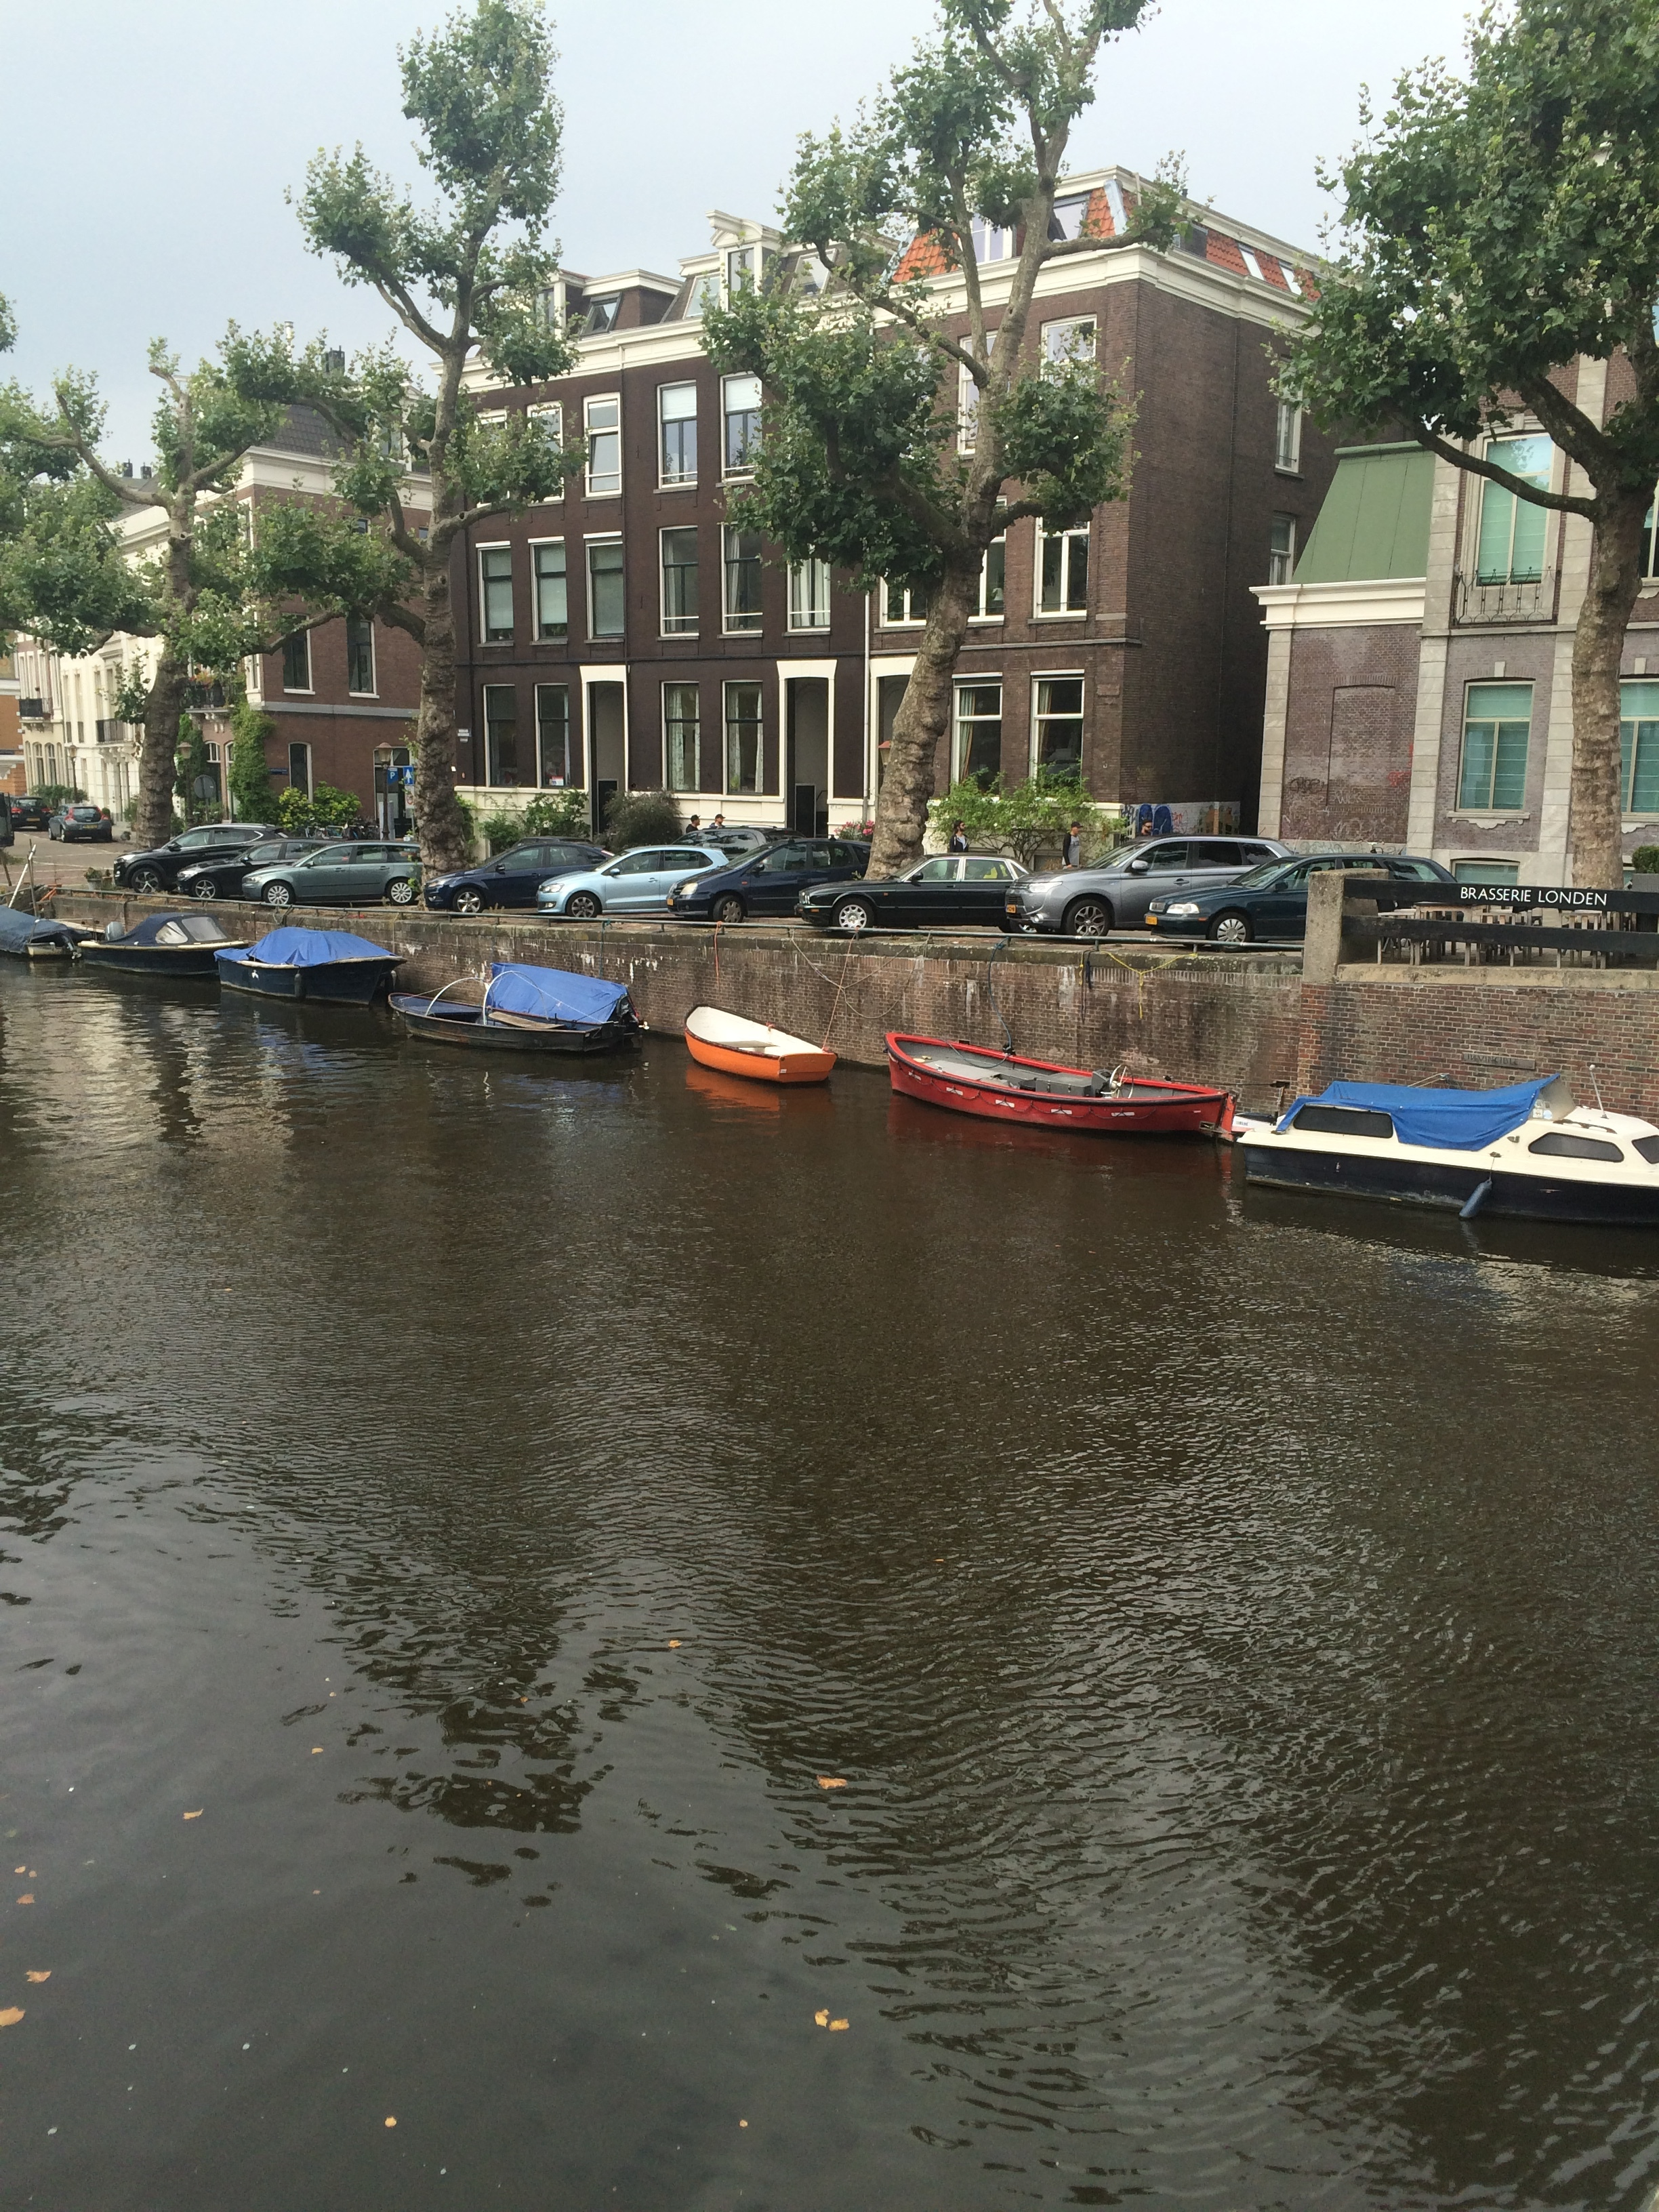 These are the river boats I mentioned that are going along with the flow of traffic on the streets above.